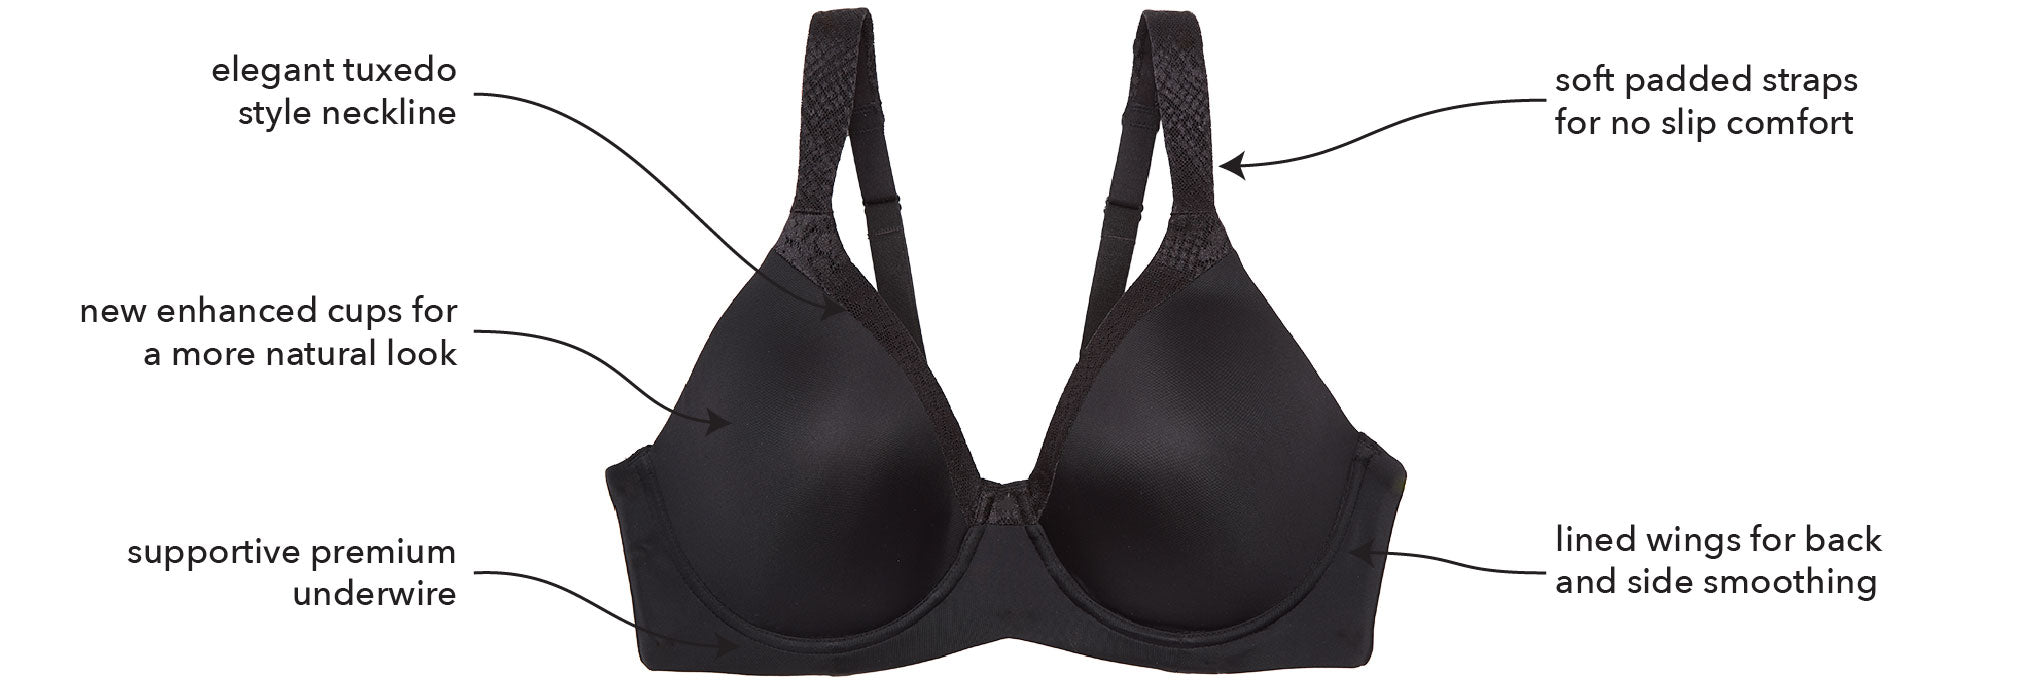 b08b90b4e Your T-shirt Bra just got a premium upgrade! Our Luxe Body Underwire ...